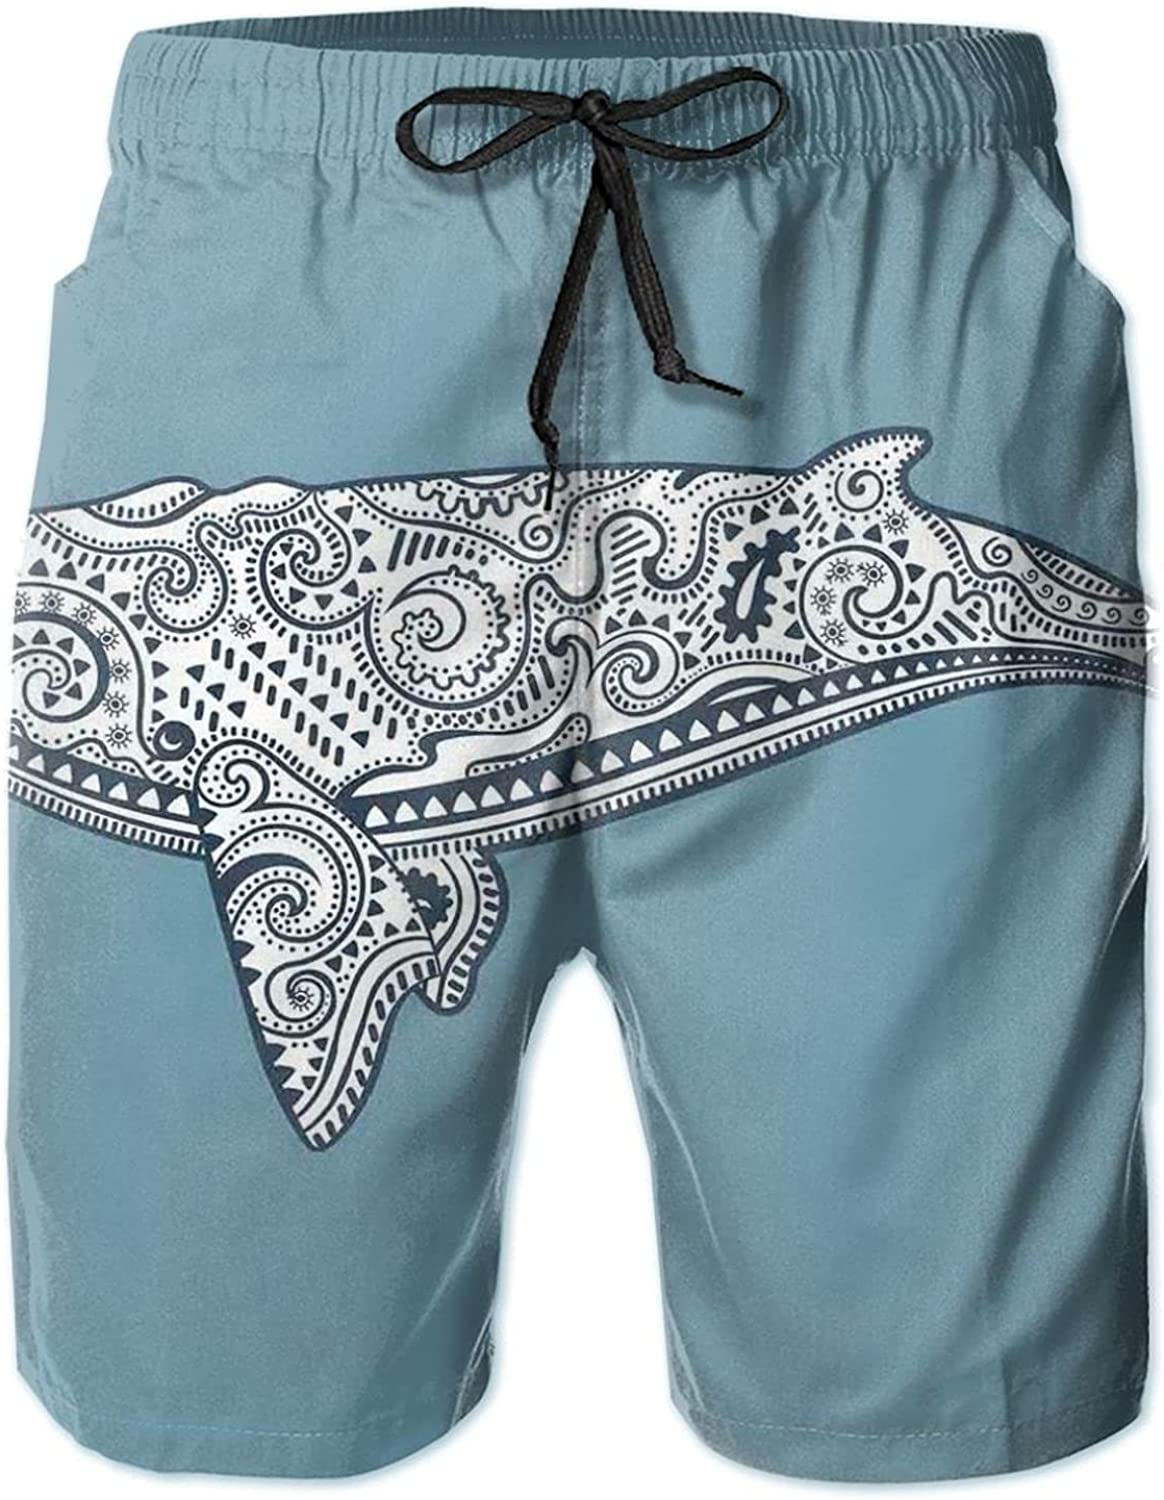 MUJAQ Ethnic Whale Fish with Totem Symbol and Kitsch Antique Paisley Pattern Drawstring Waist Beach Shorts for Men Swim Trucks Board Shorts with Mesh Lining,XL